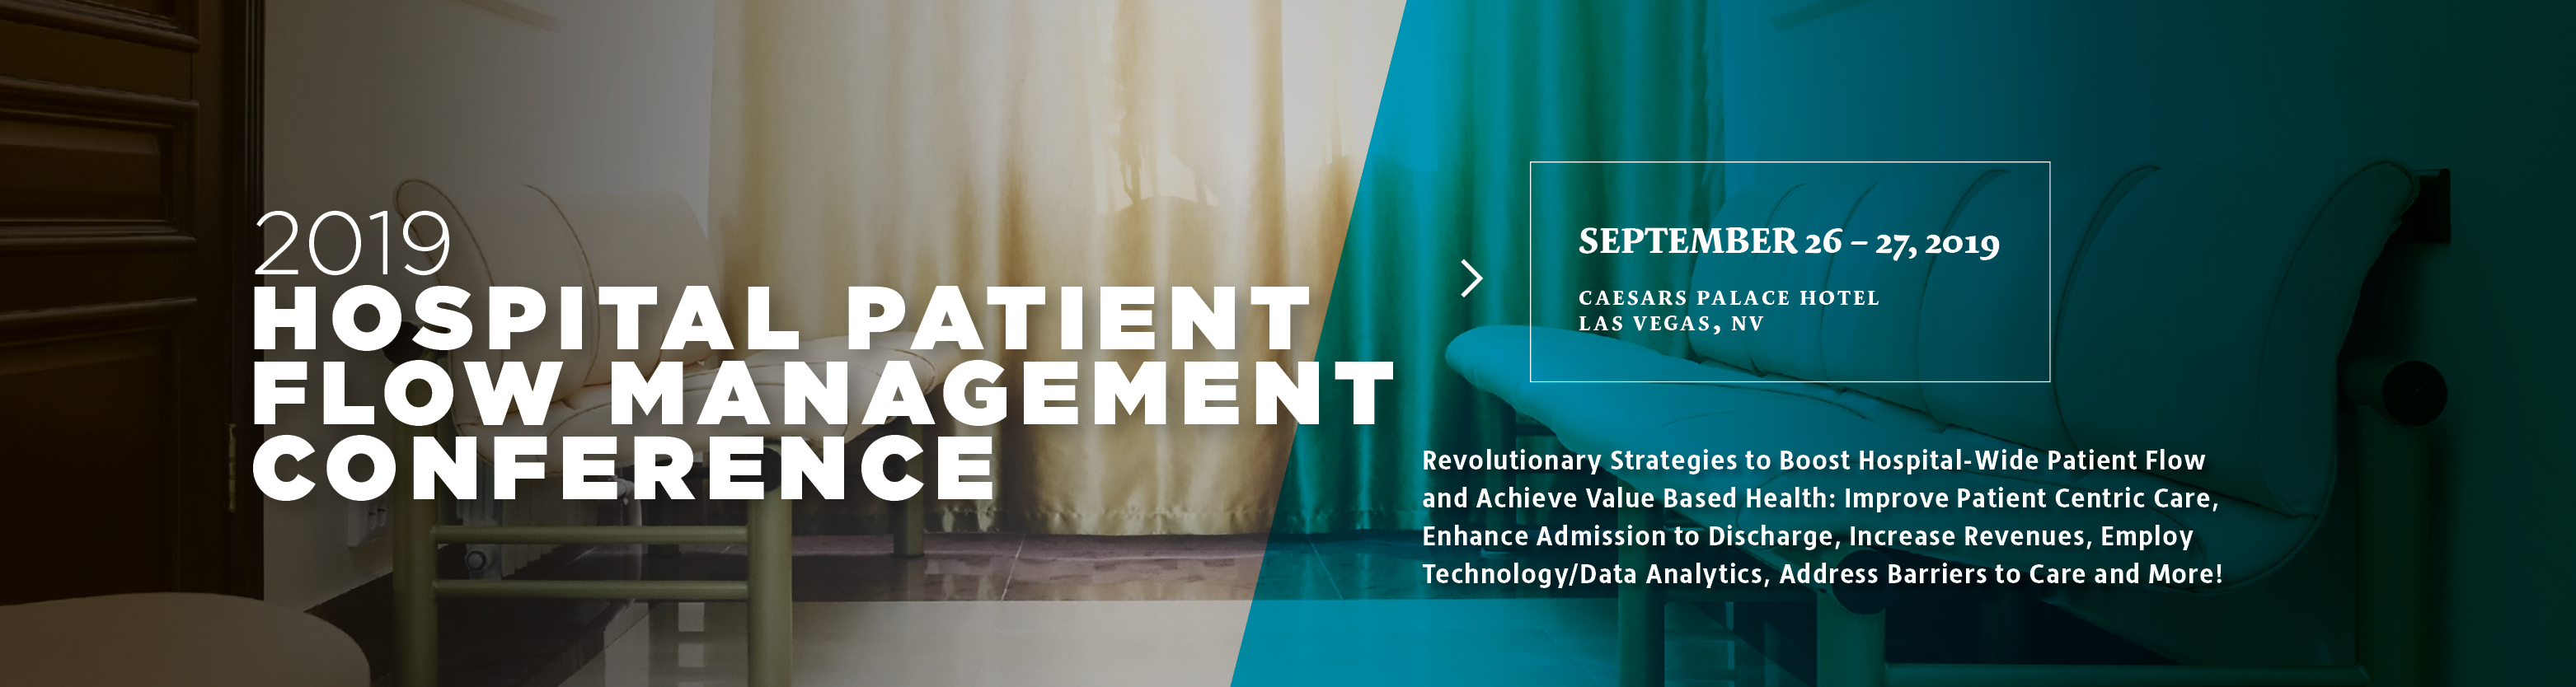 2019 Hospital Patient Flow Management Conference